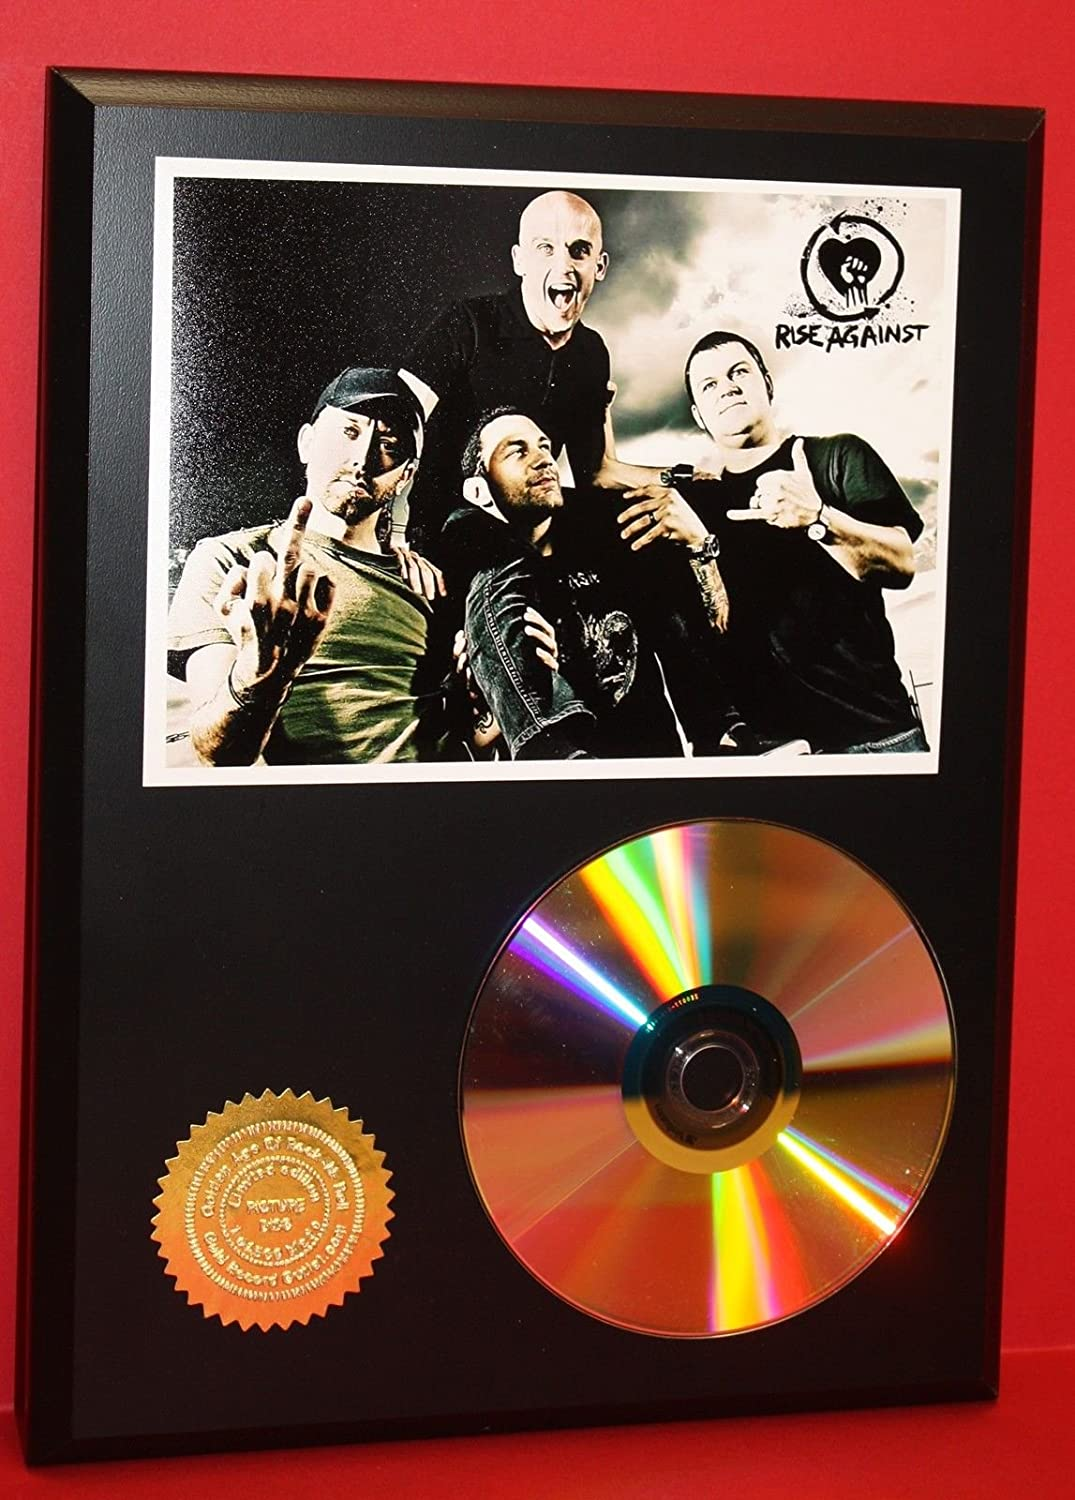 Rise Against Punk 24kt Gold Cd Collectible Rare Award Quality Plaque